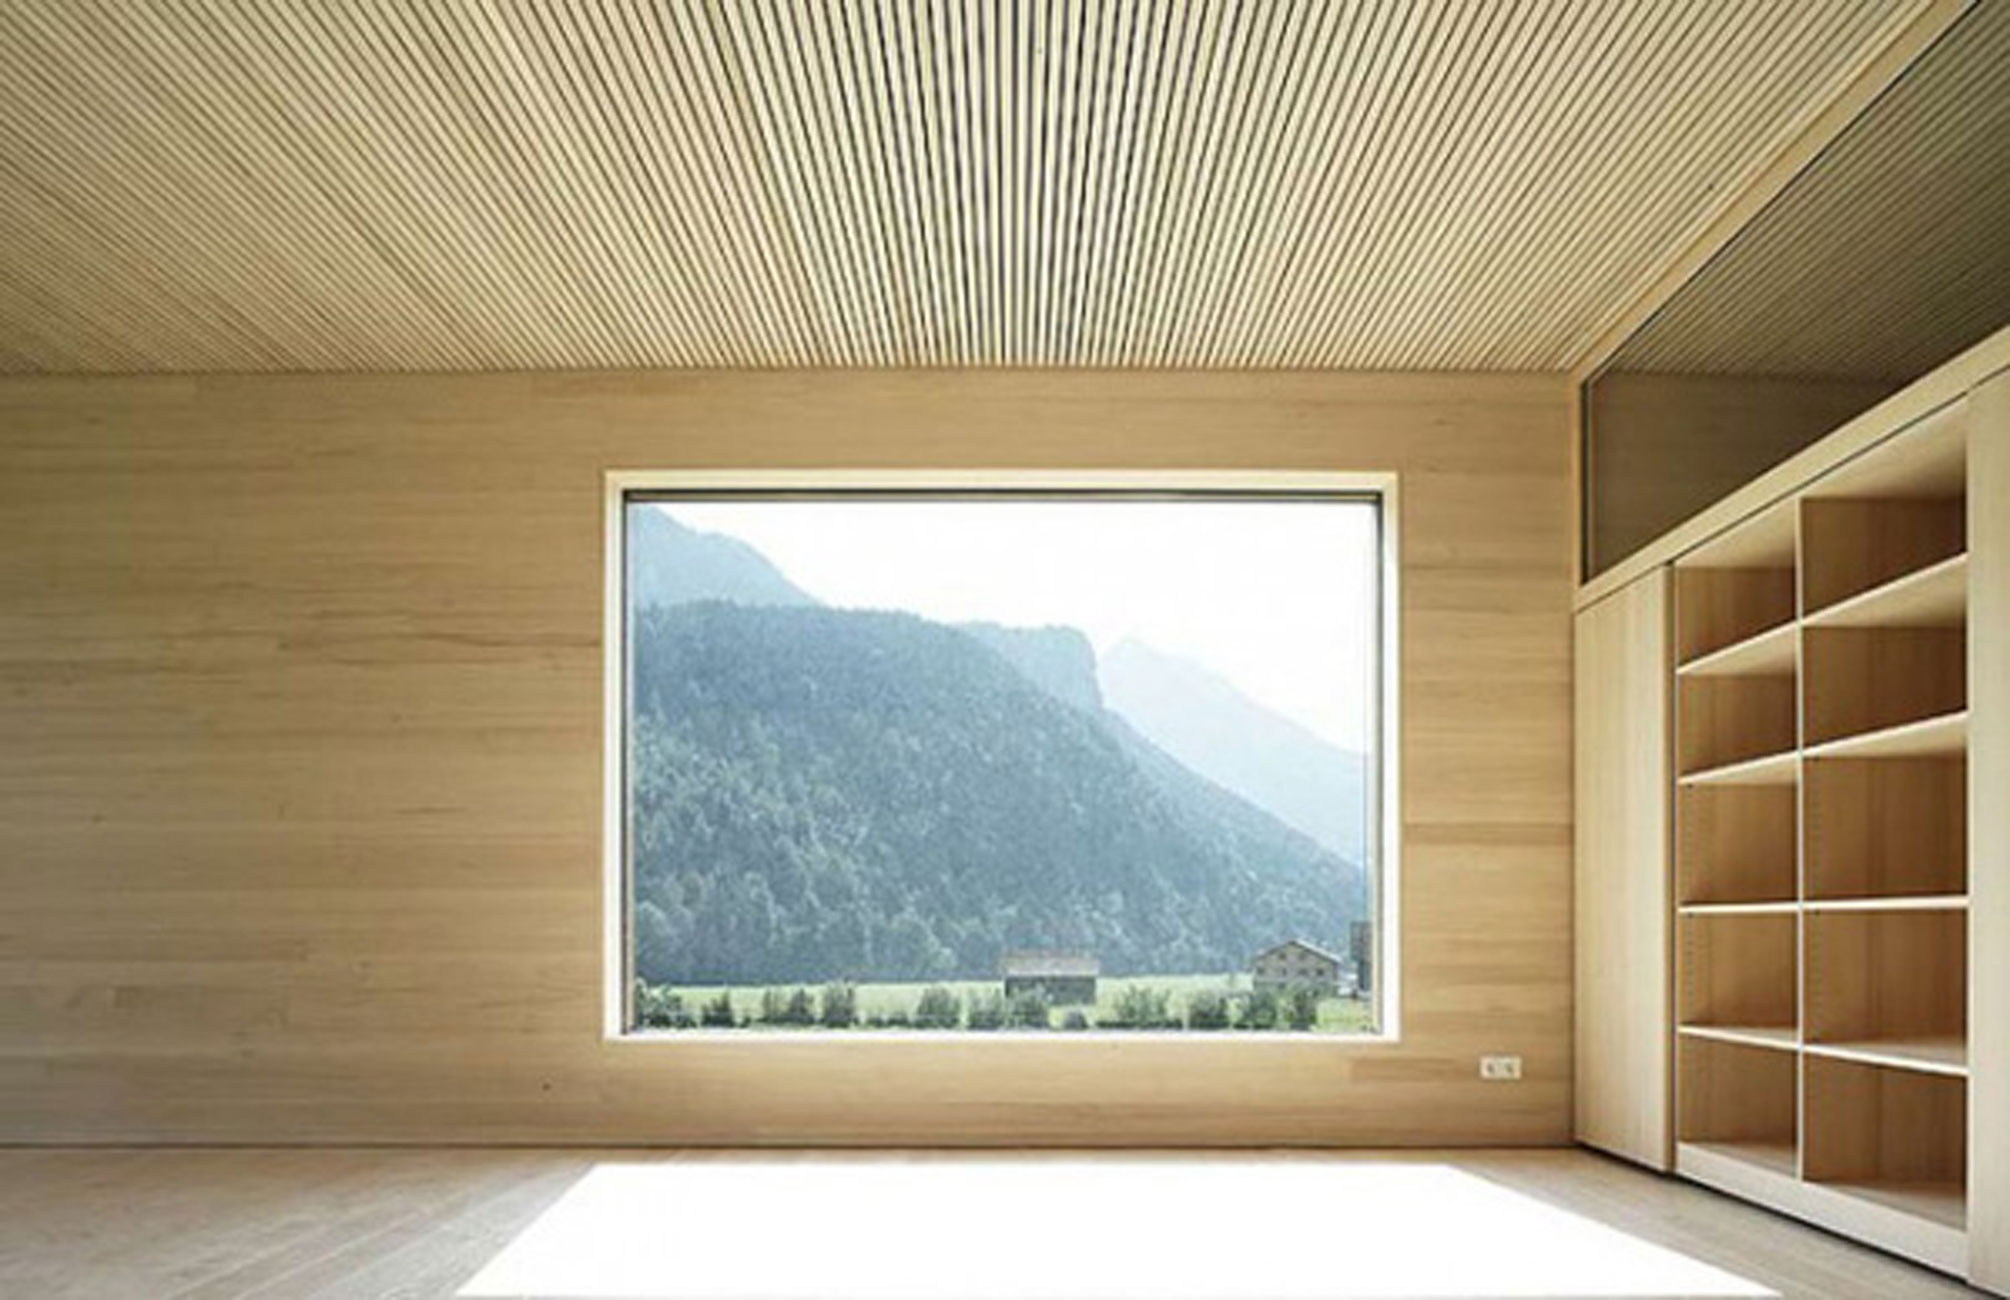 Minimalist Wooden House Ideas by Bernardo Bader - a Room